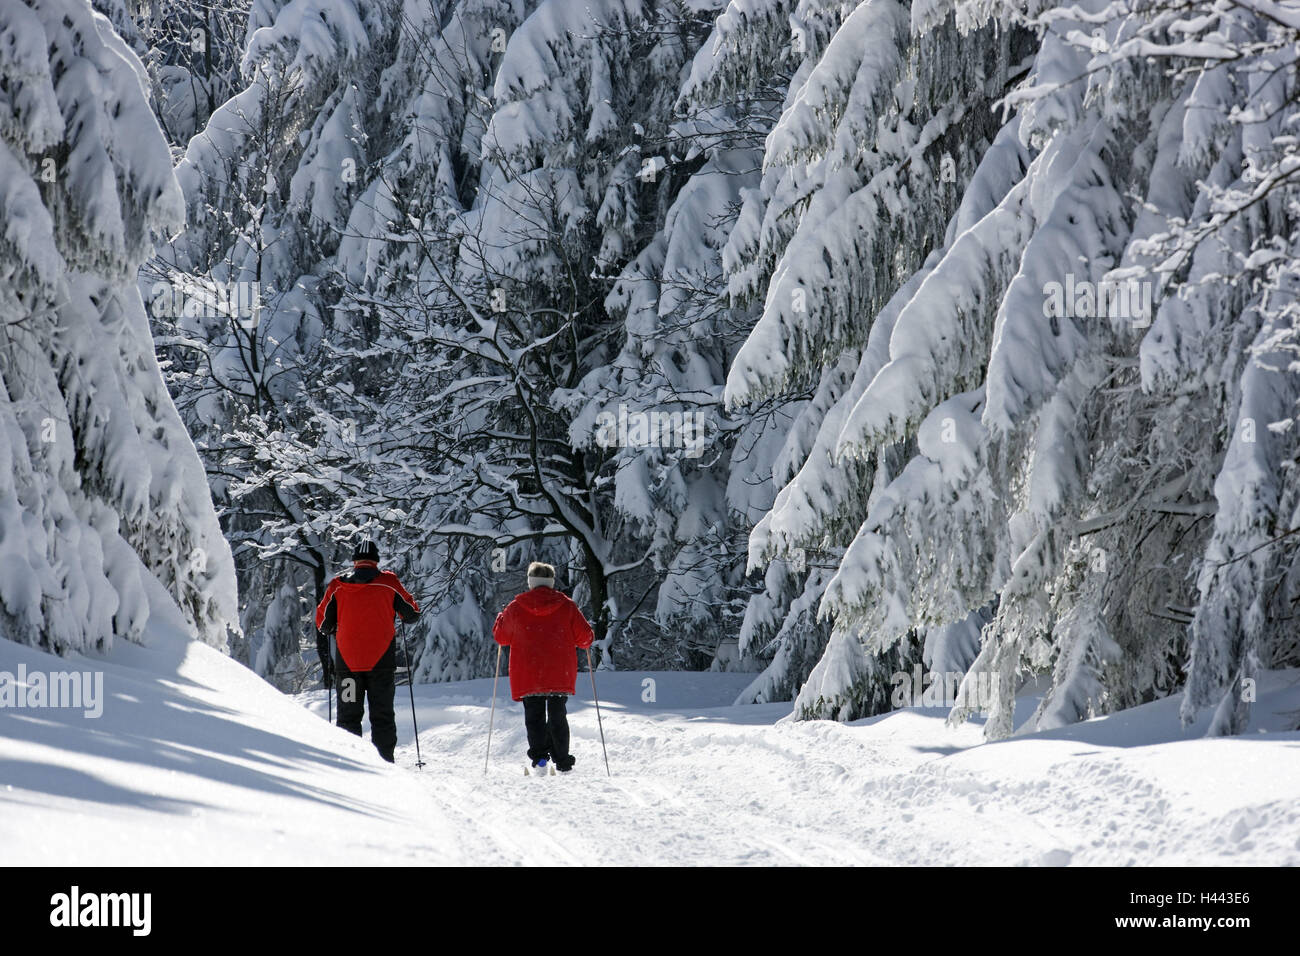 Wood, snow, two ski cross-country skiers, spruces, - Stock Image